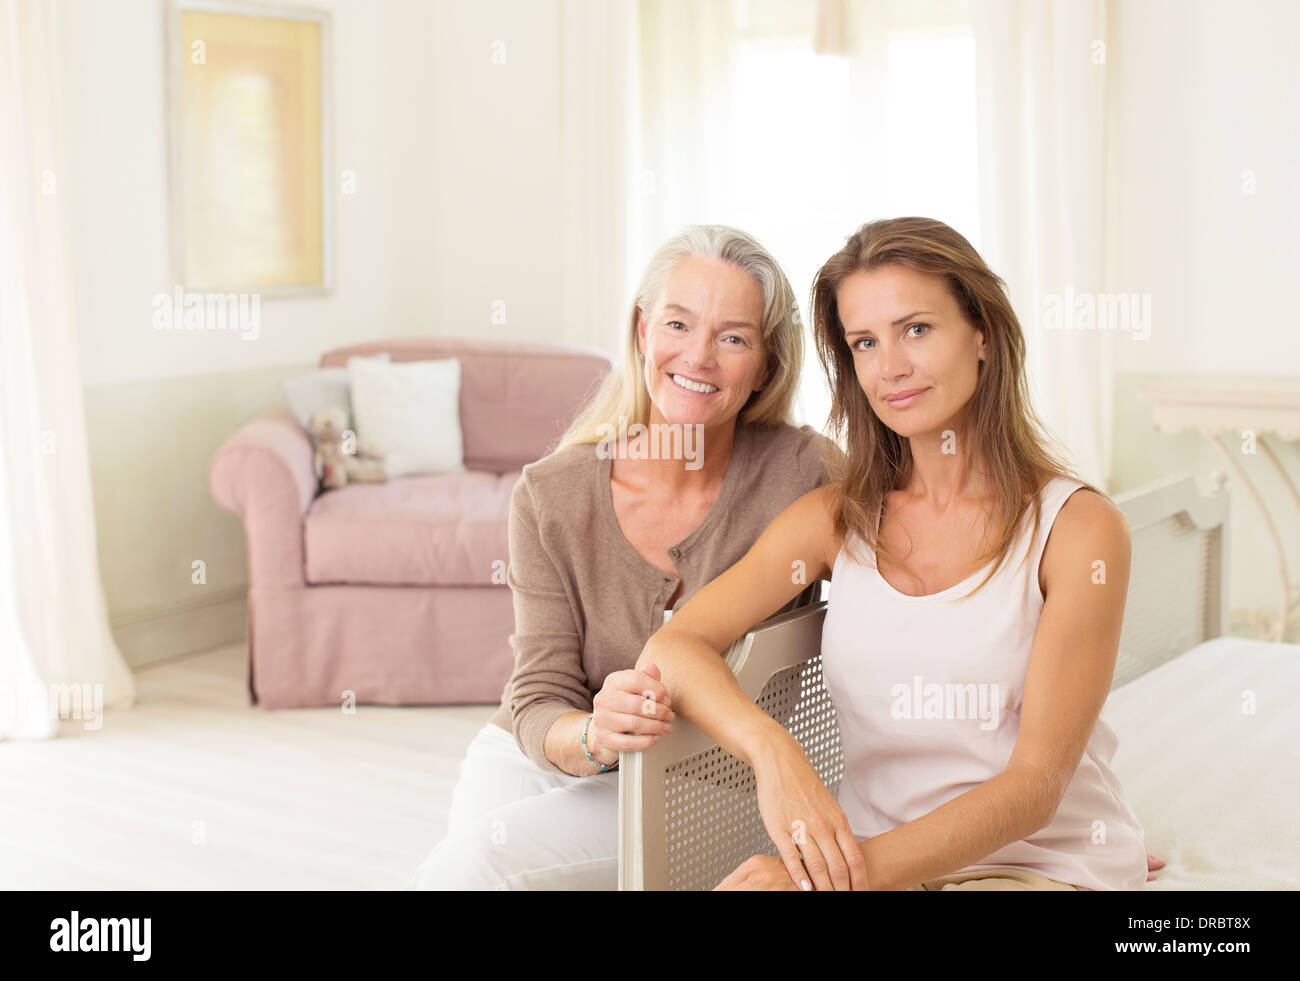 Mother and daughter smiling in bedroom - Stock Image